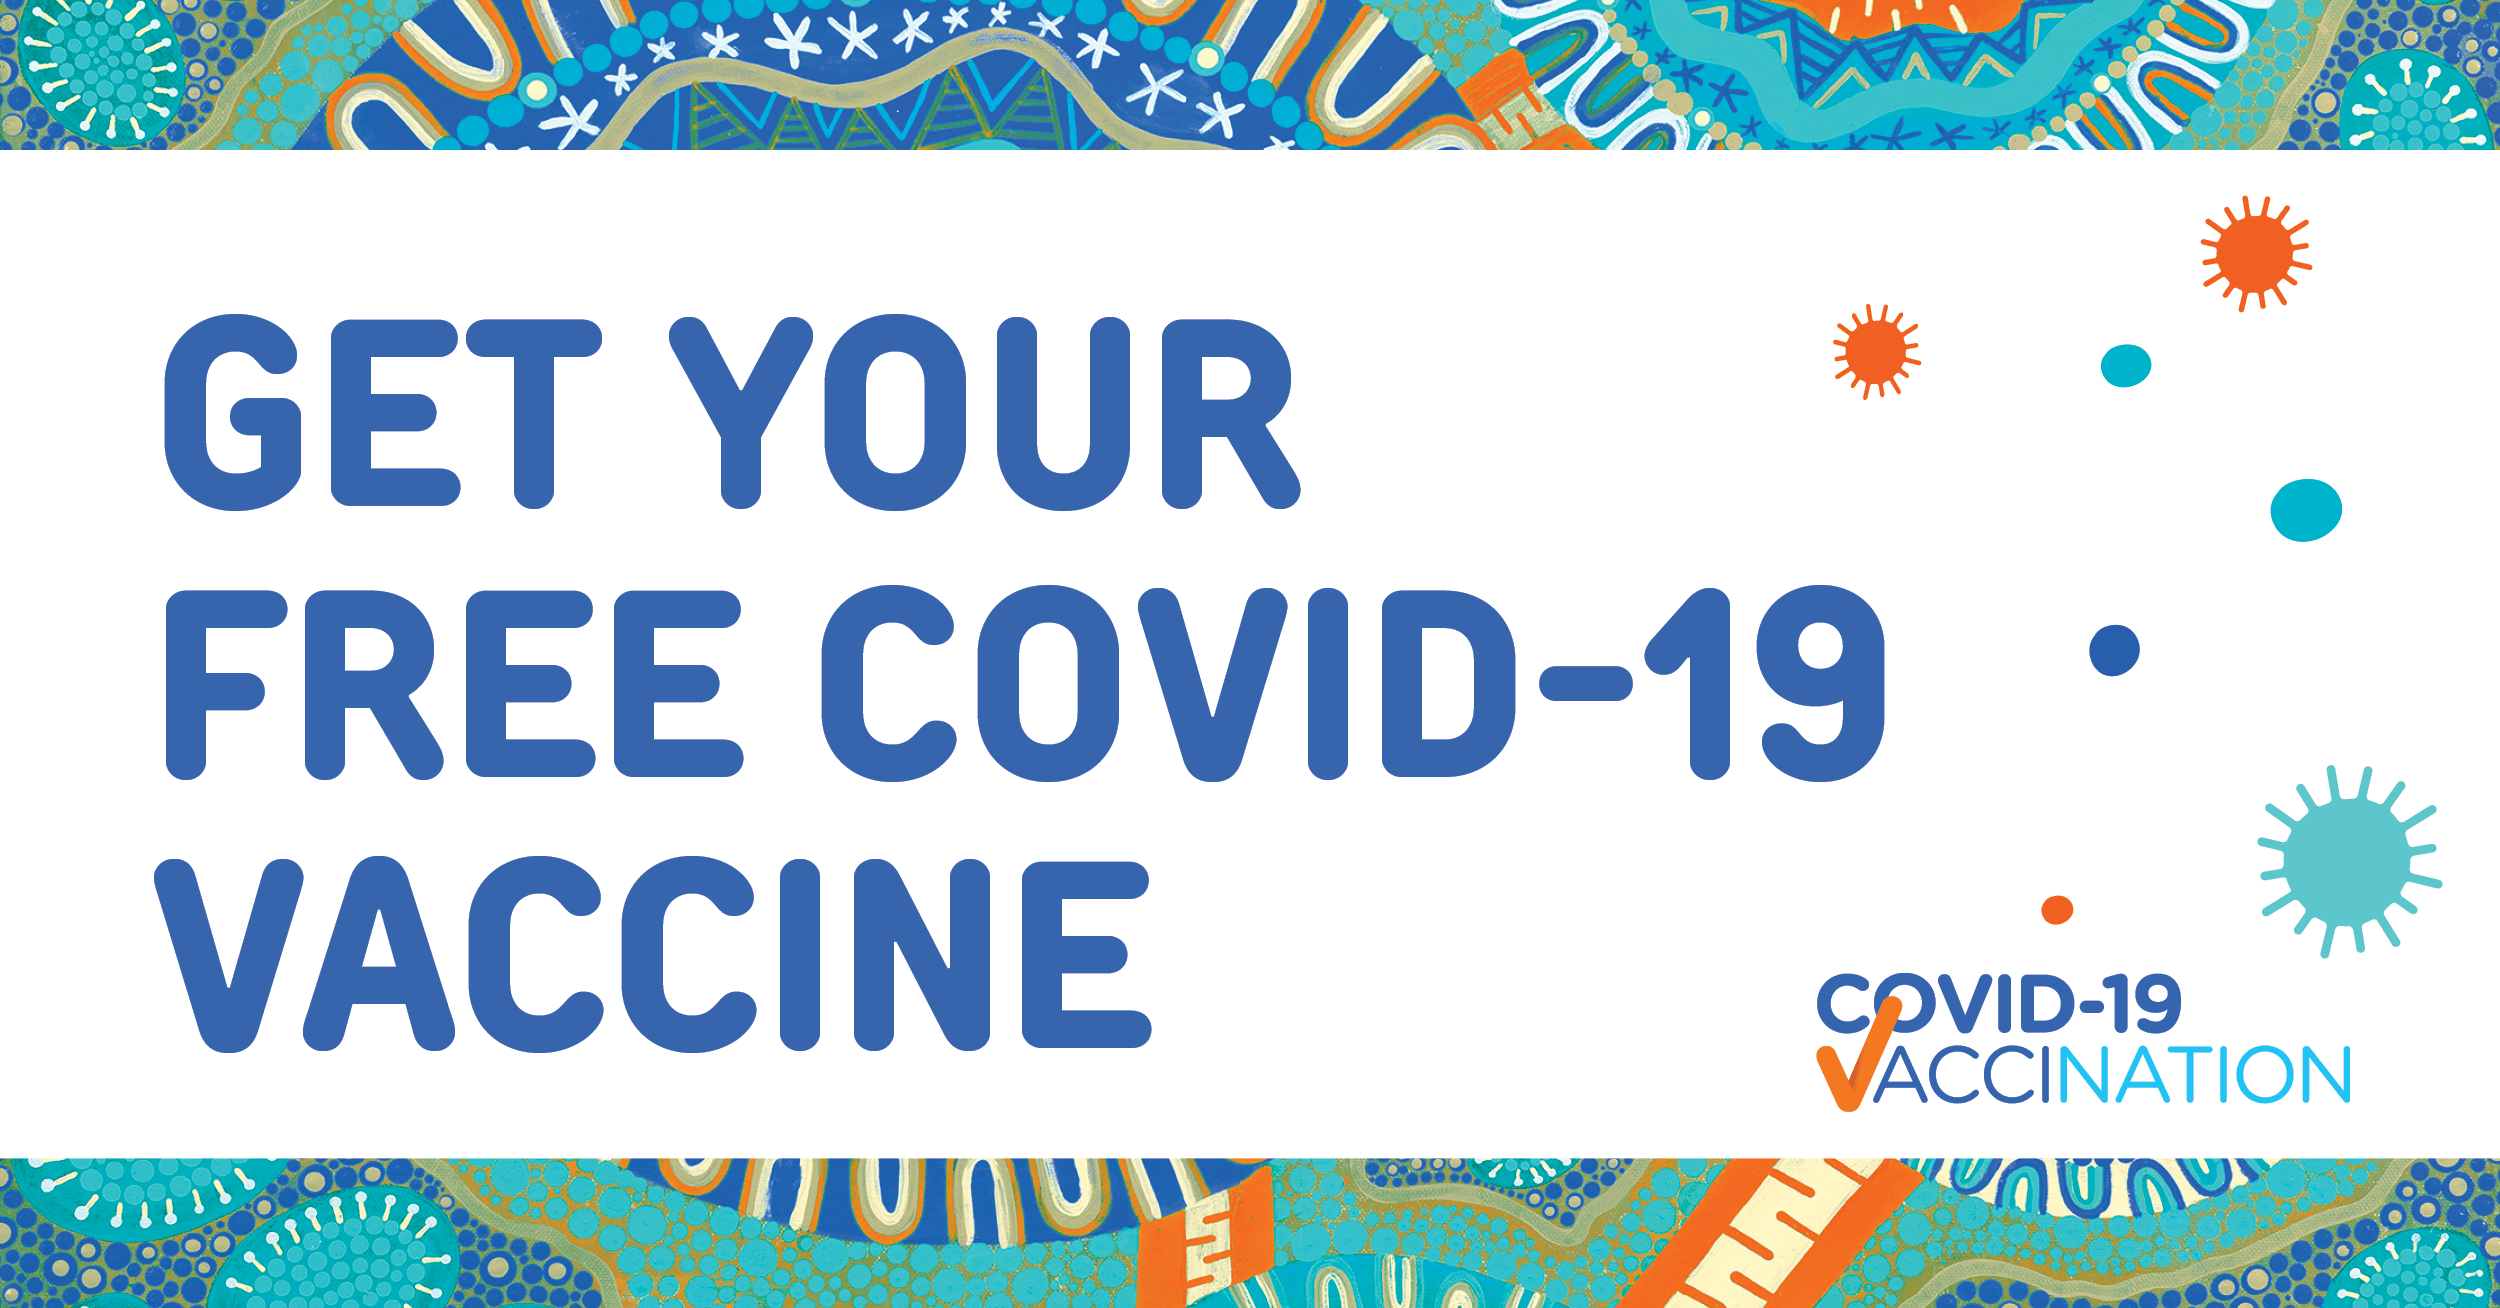 covid-19-vaccination-social-aboriginal-and-torres-strait-islander-vaccine-providers-get-your-free-covid-19-vaccine_1